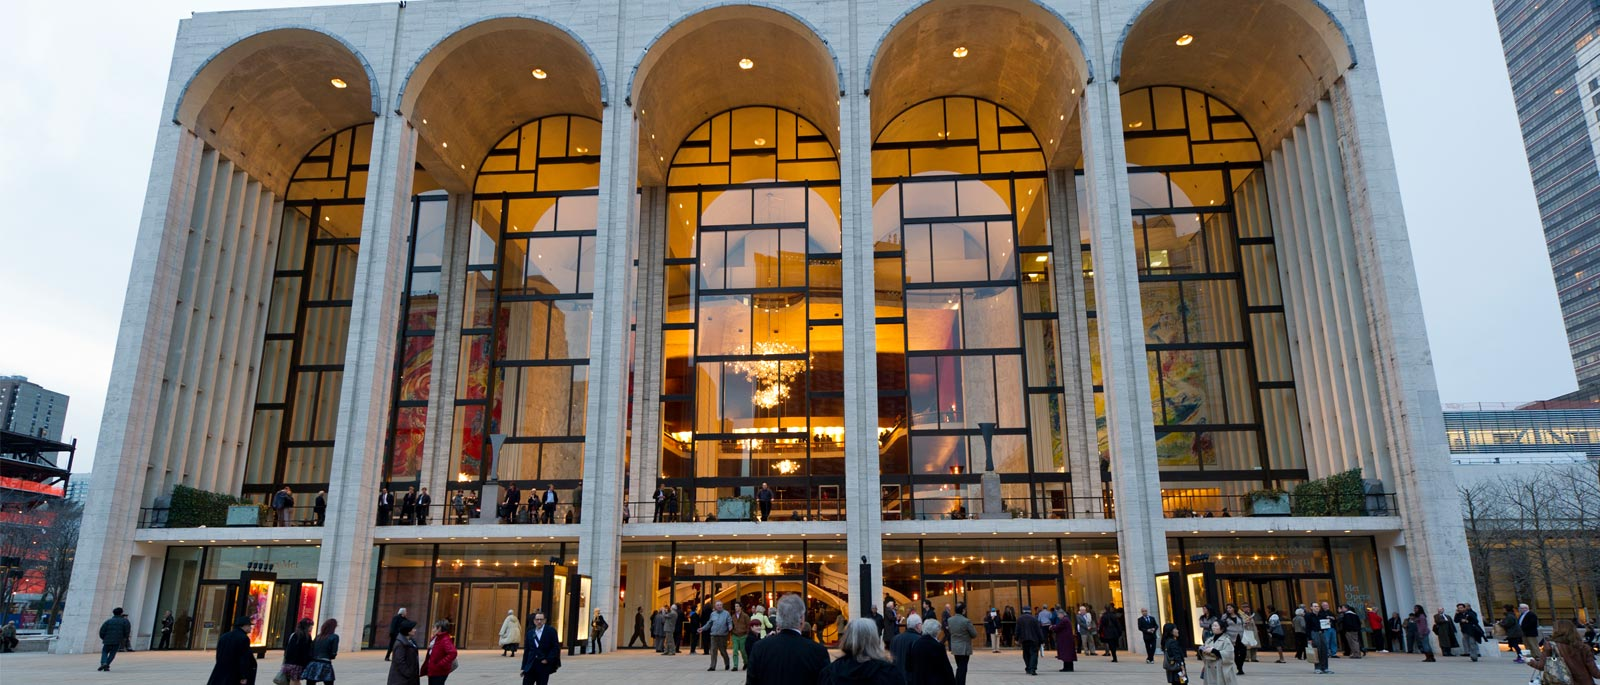 An outside view of the Met Opera house